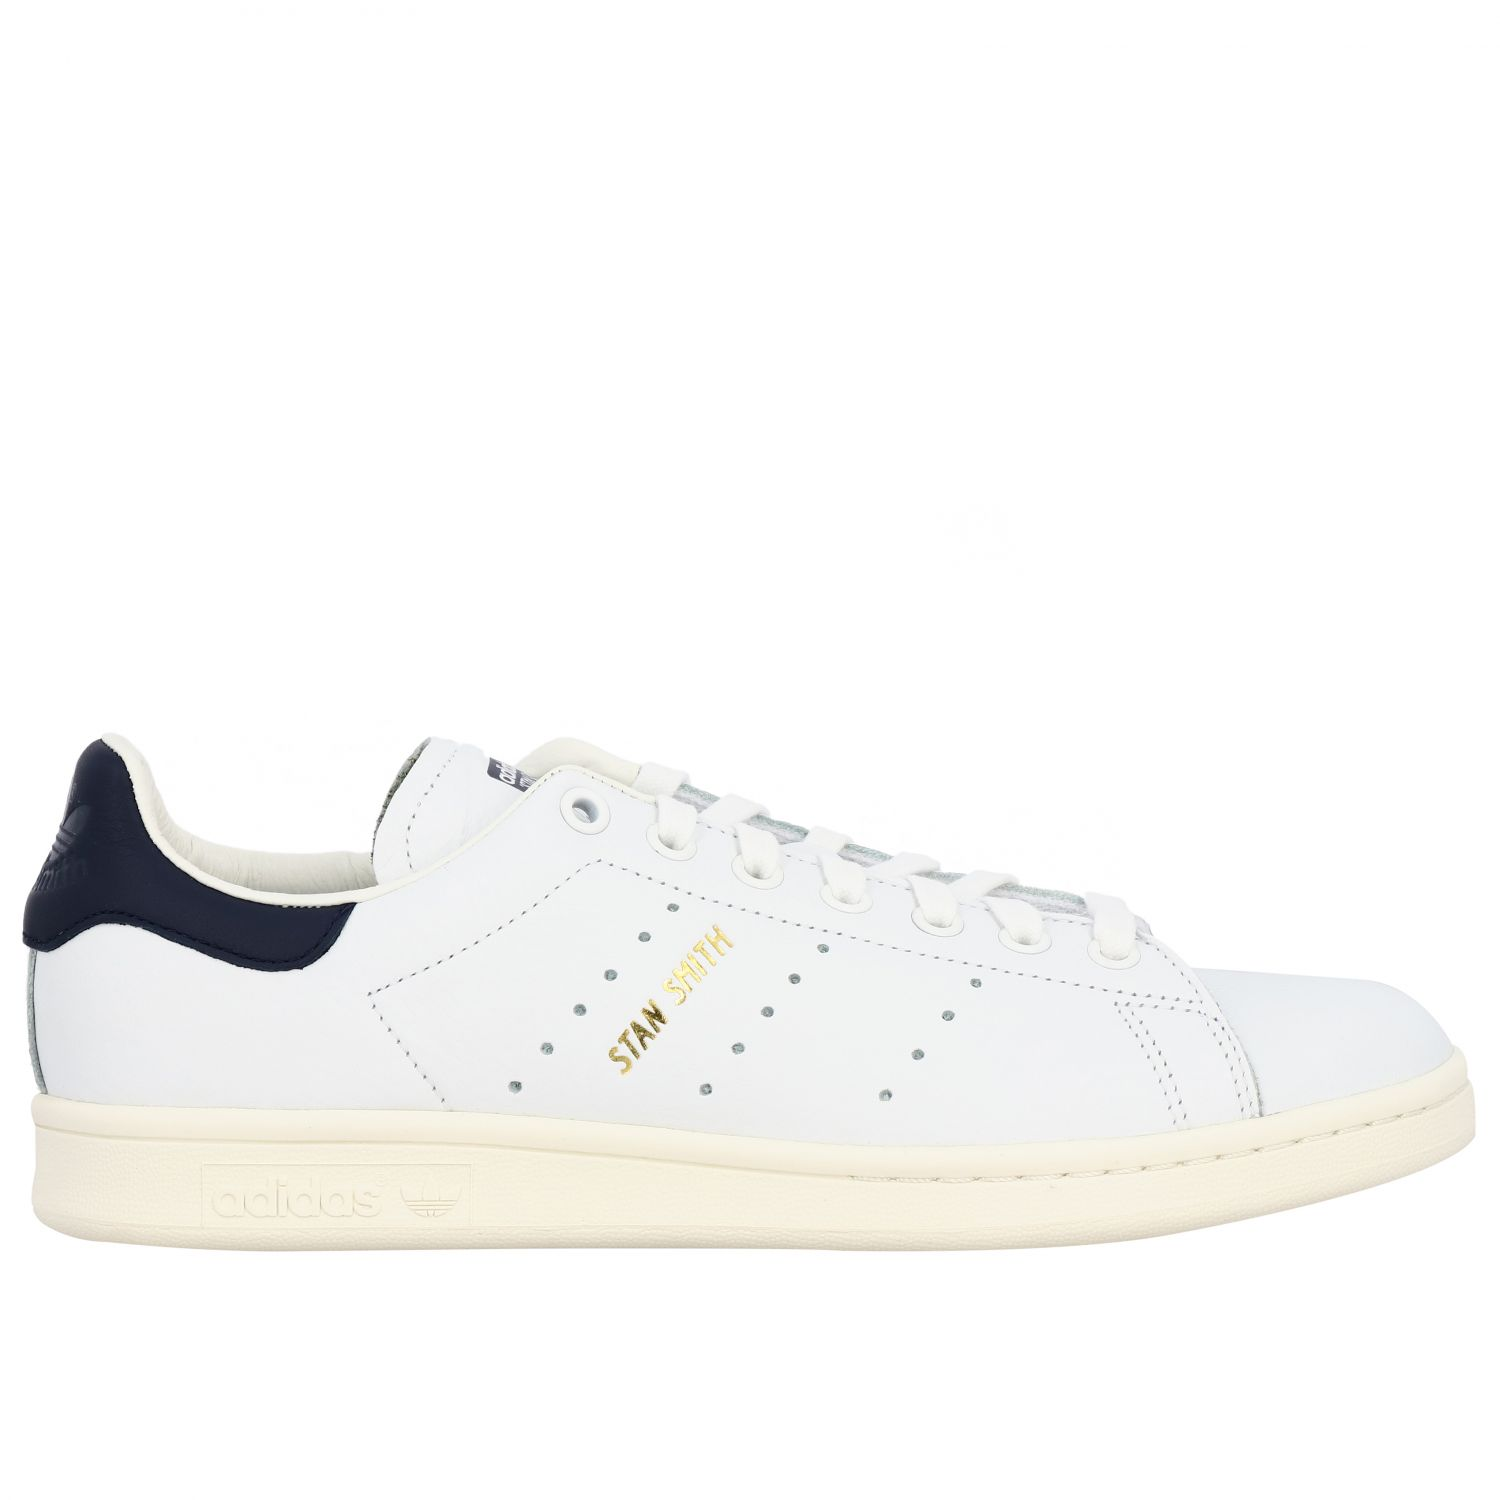 Sneakers Adidas Originals: Stan smith Adidas Originals leather sneakers white 1